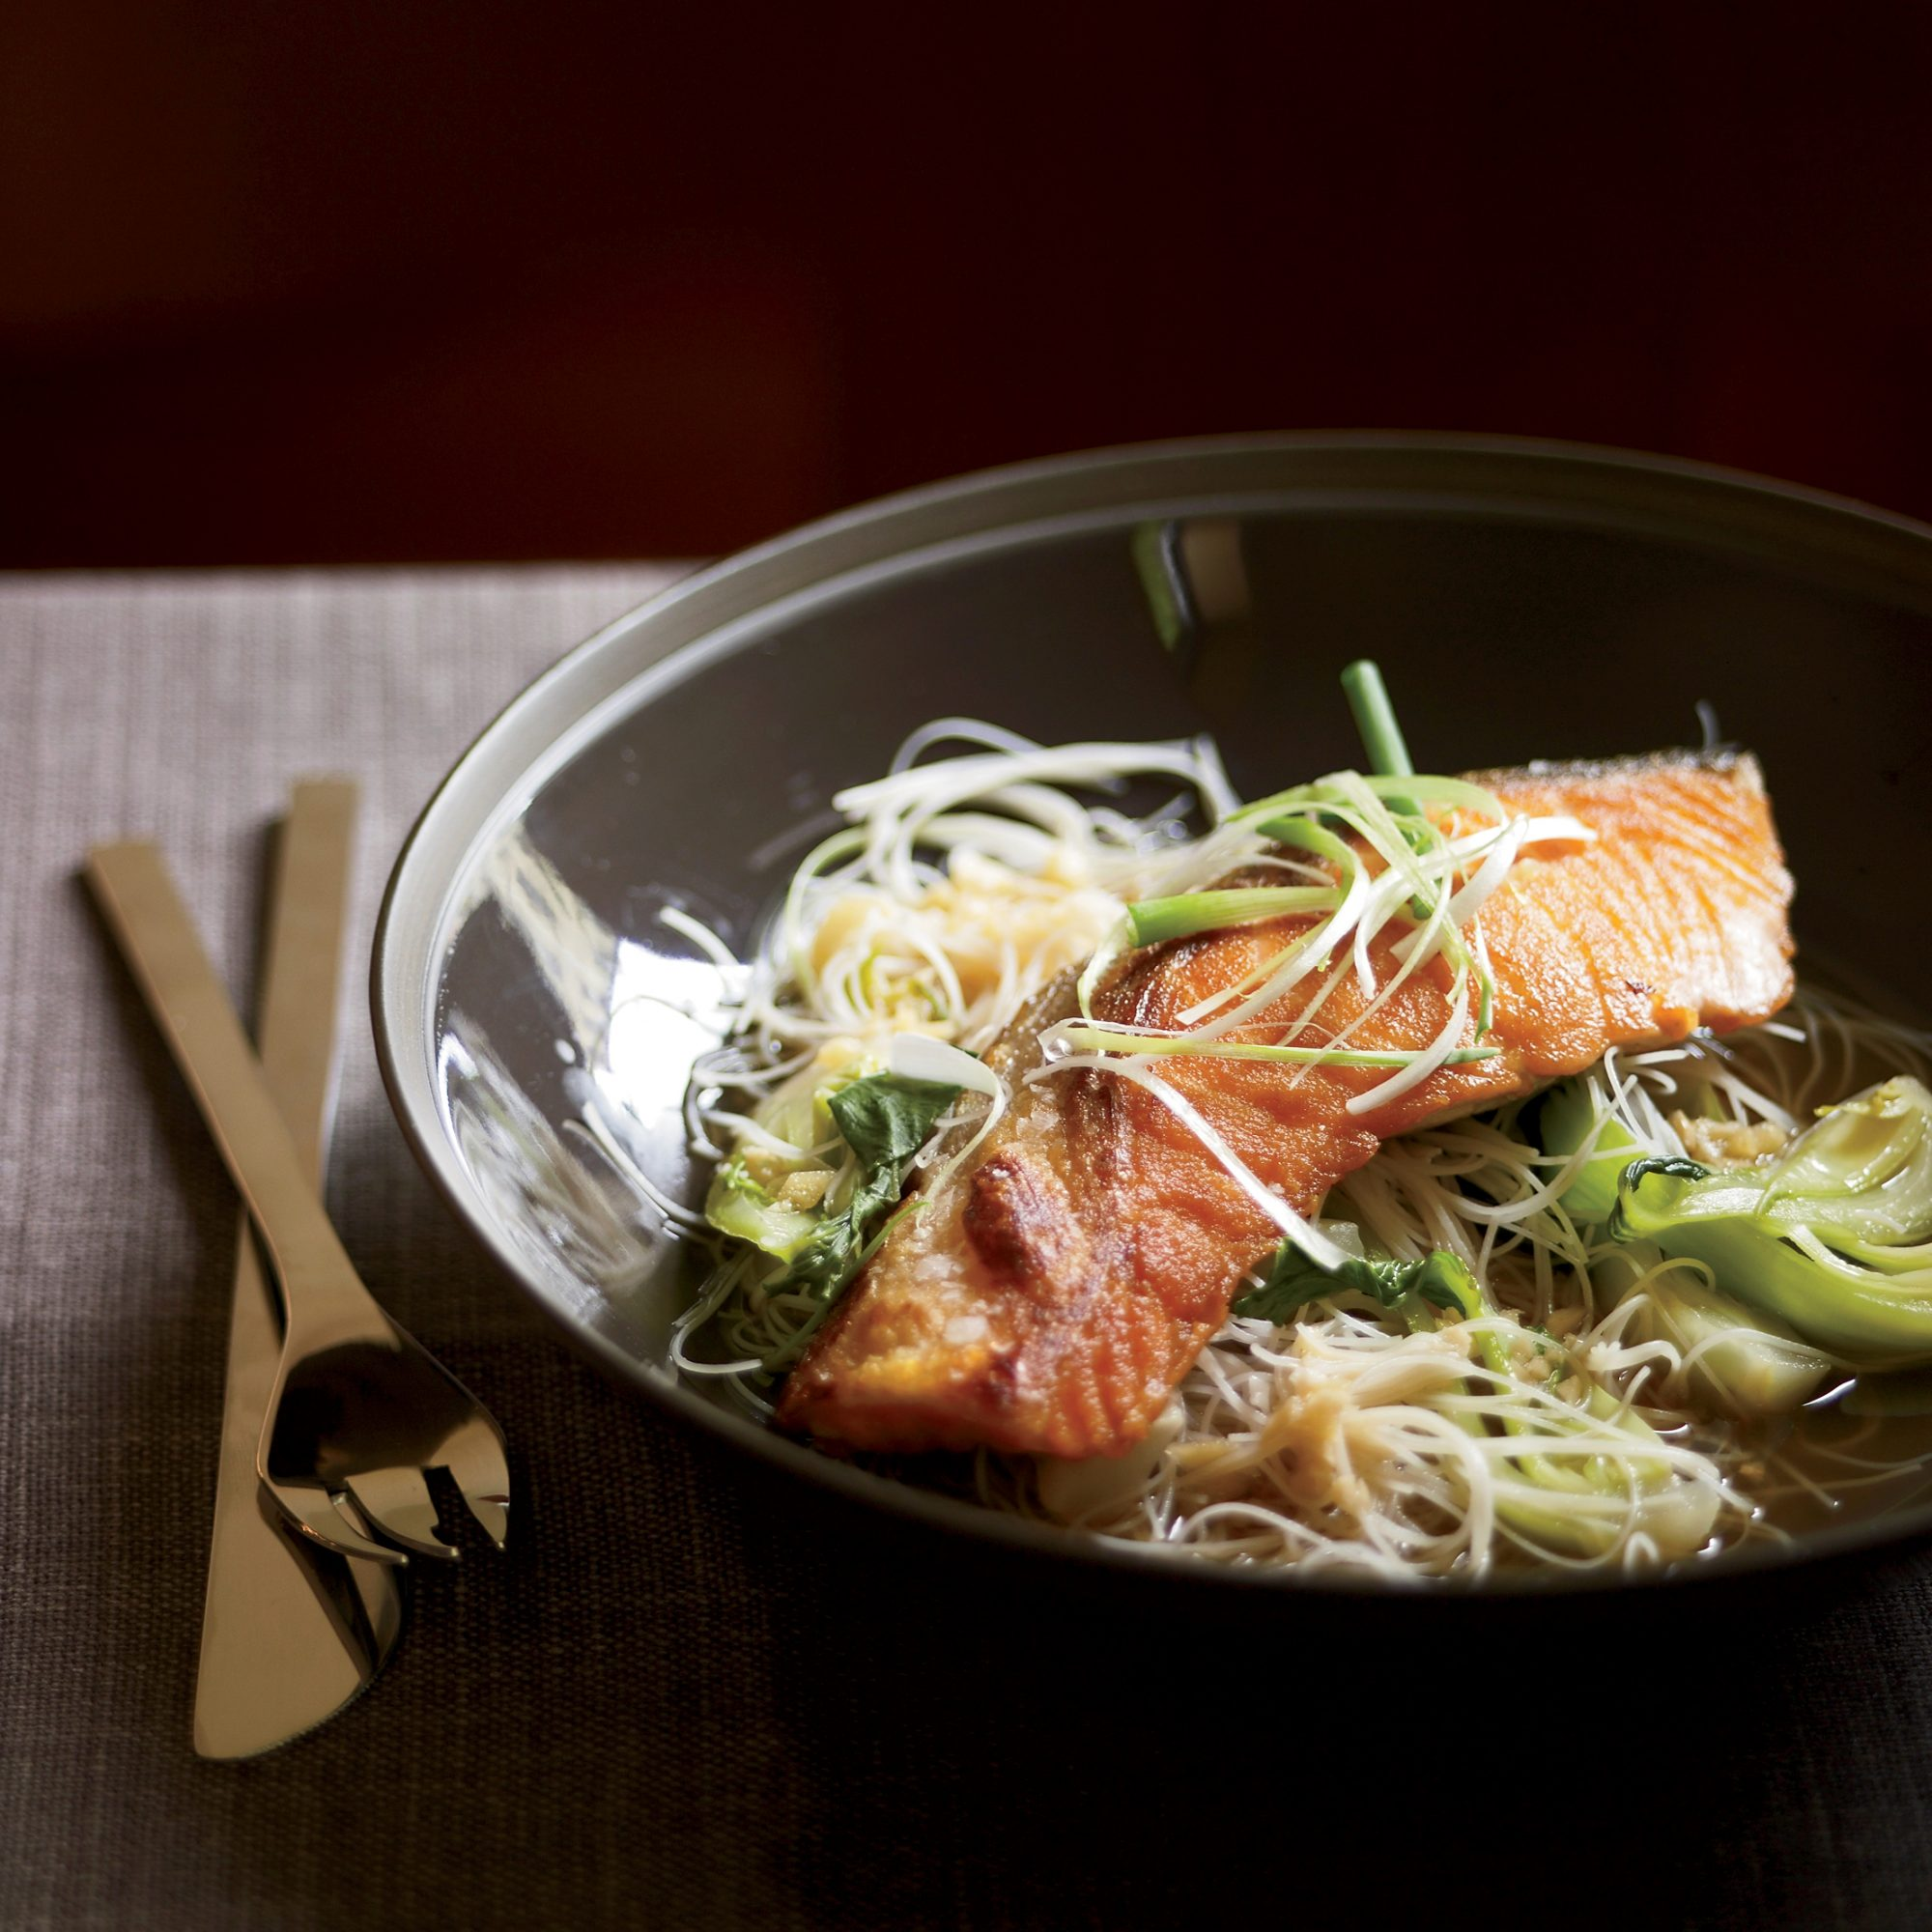 201001-r-asian-salmon-with-noodles.jpg